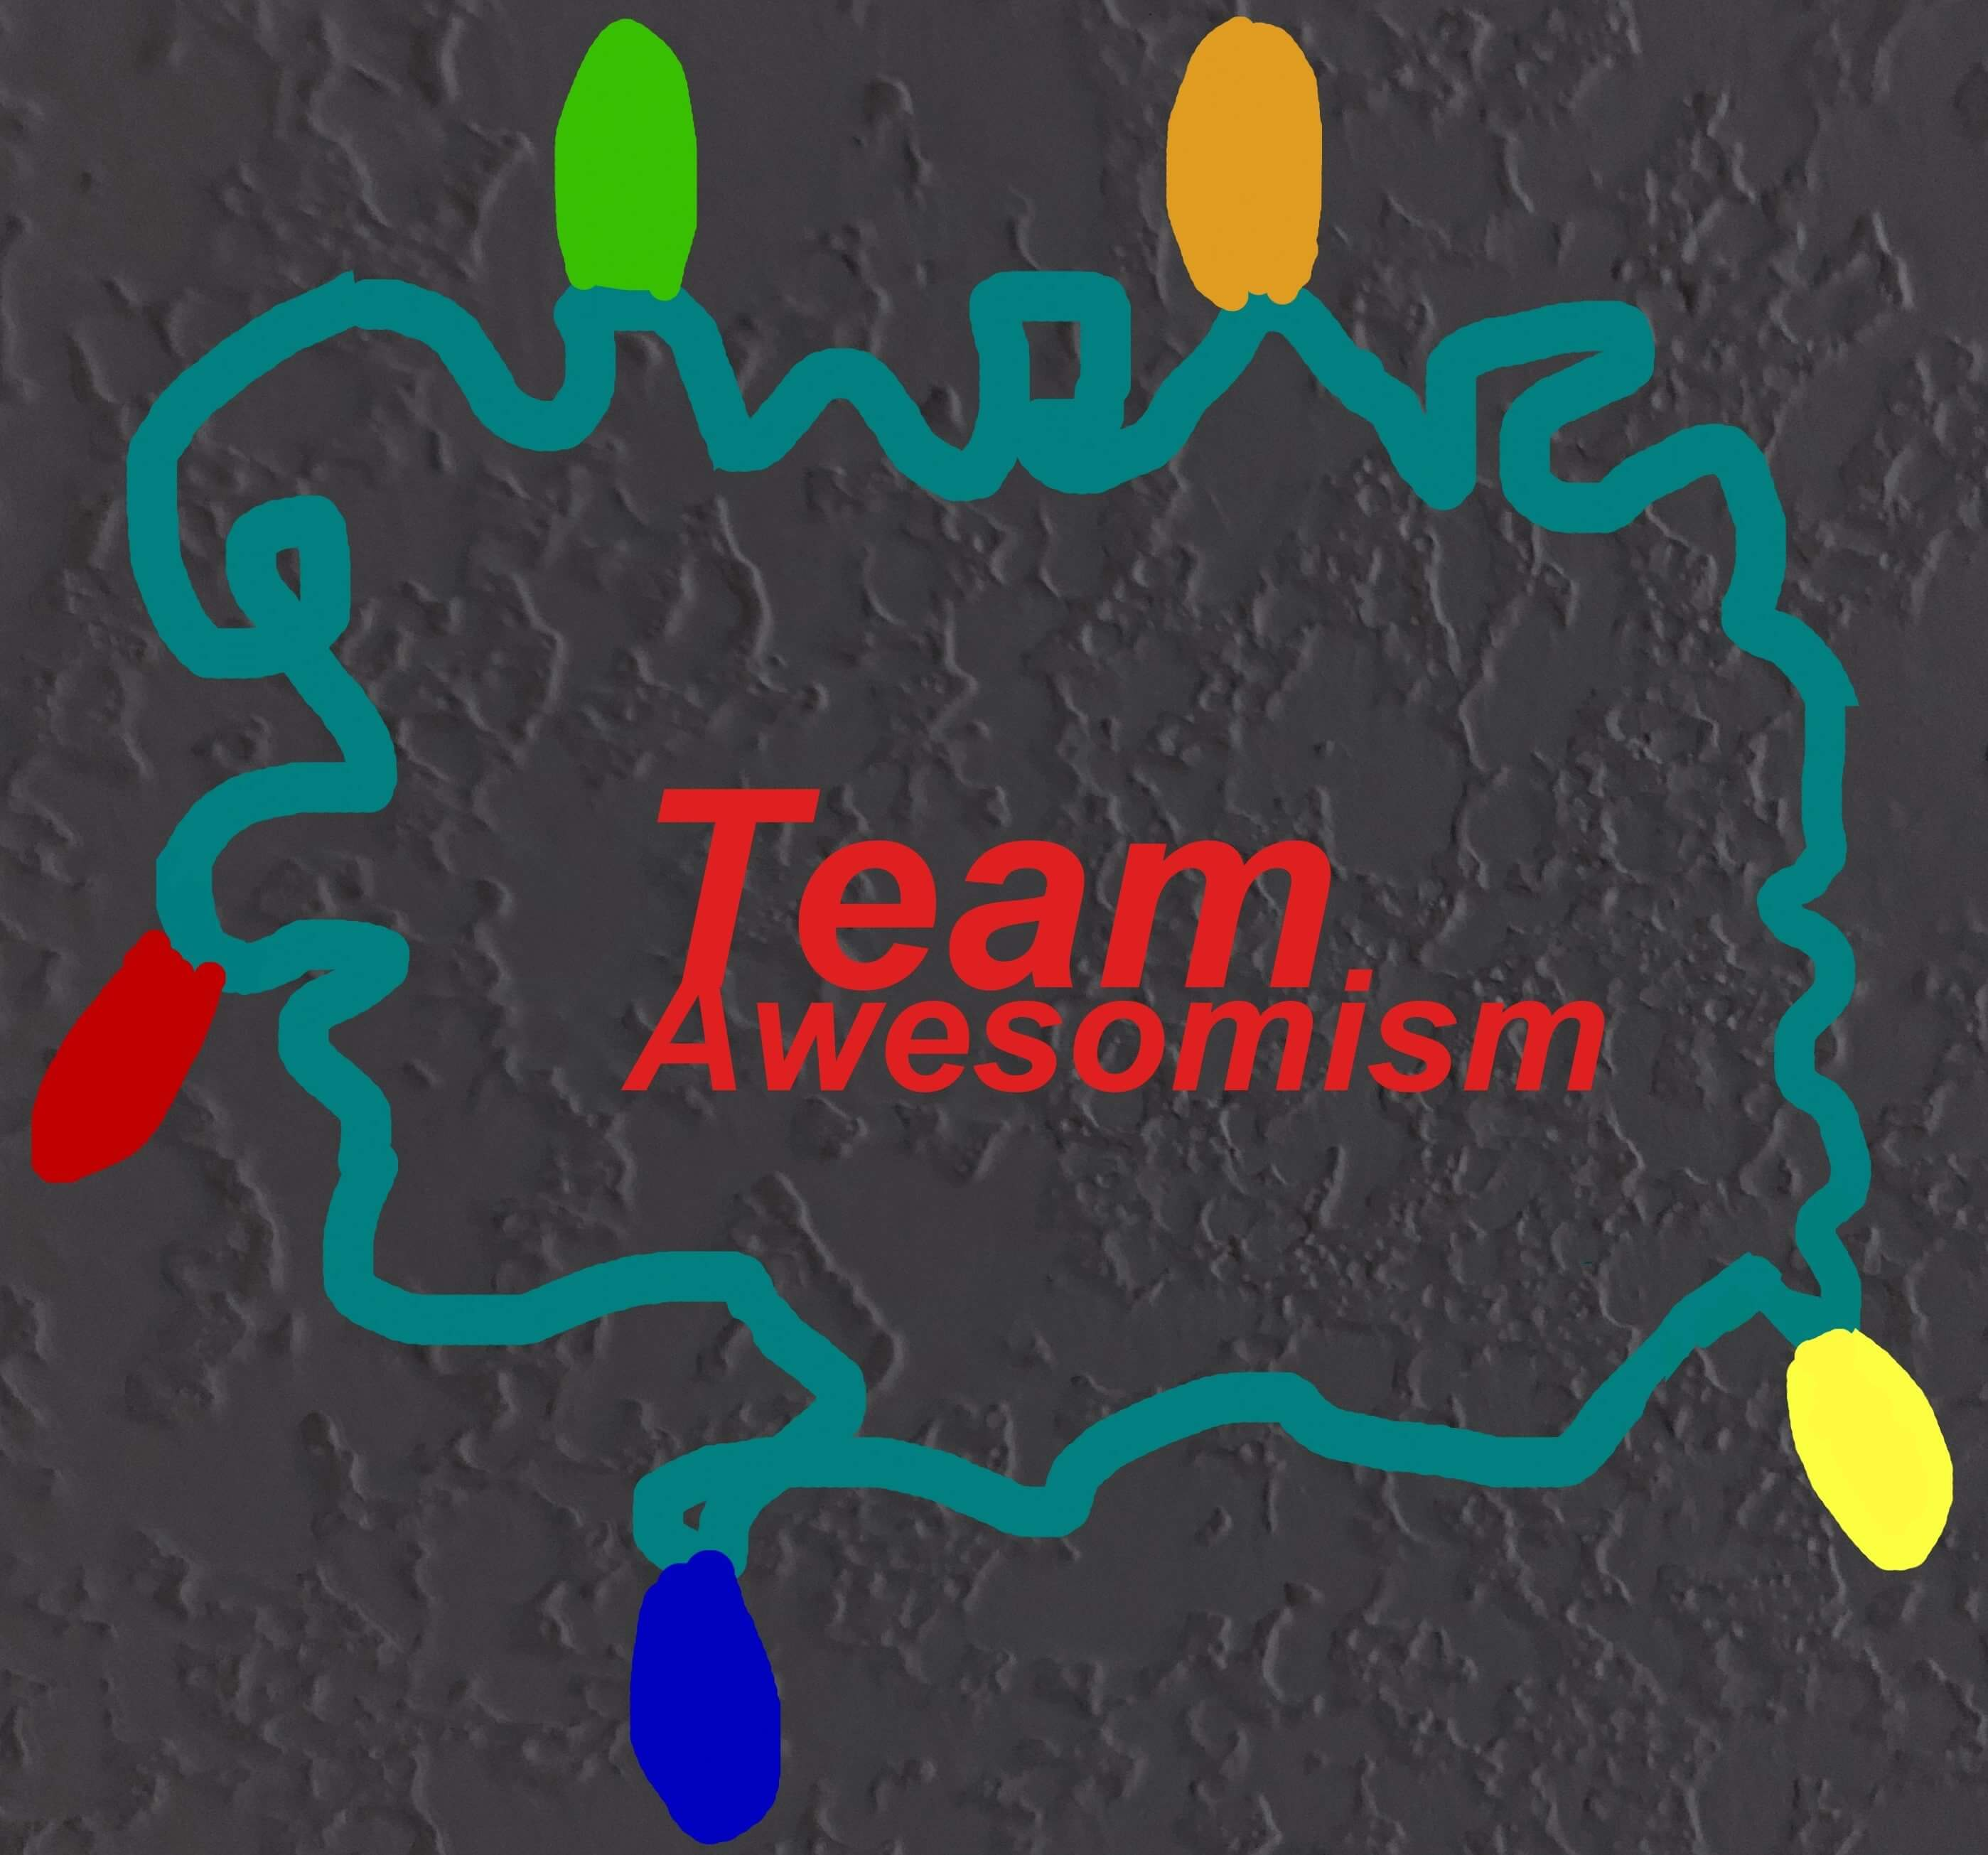 Merry Awesomism Christmas